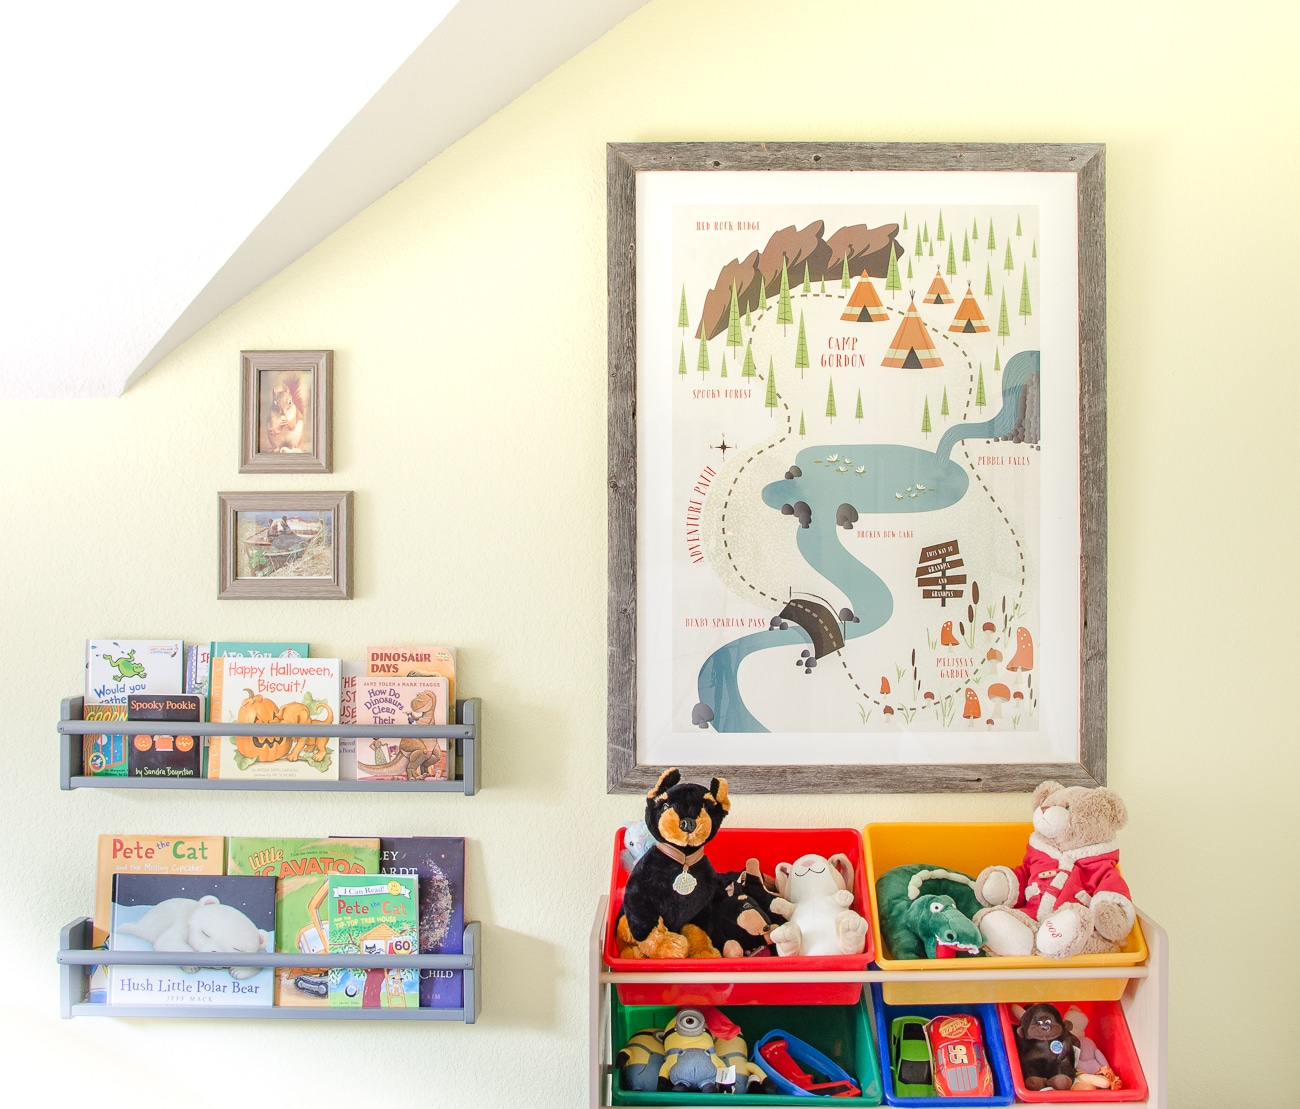 Books displayed front forward on wall racks in camping themed boy's room